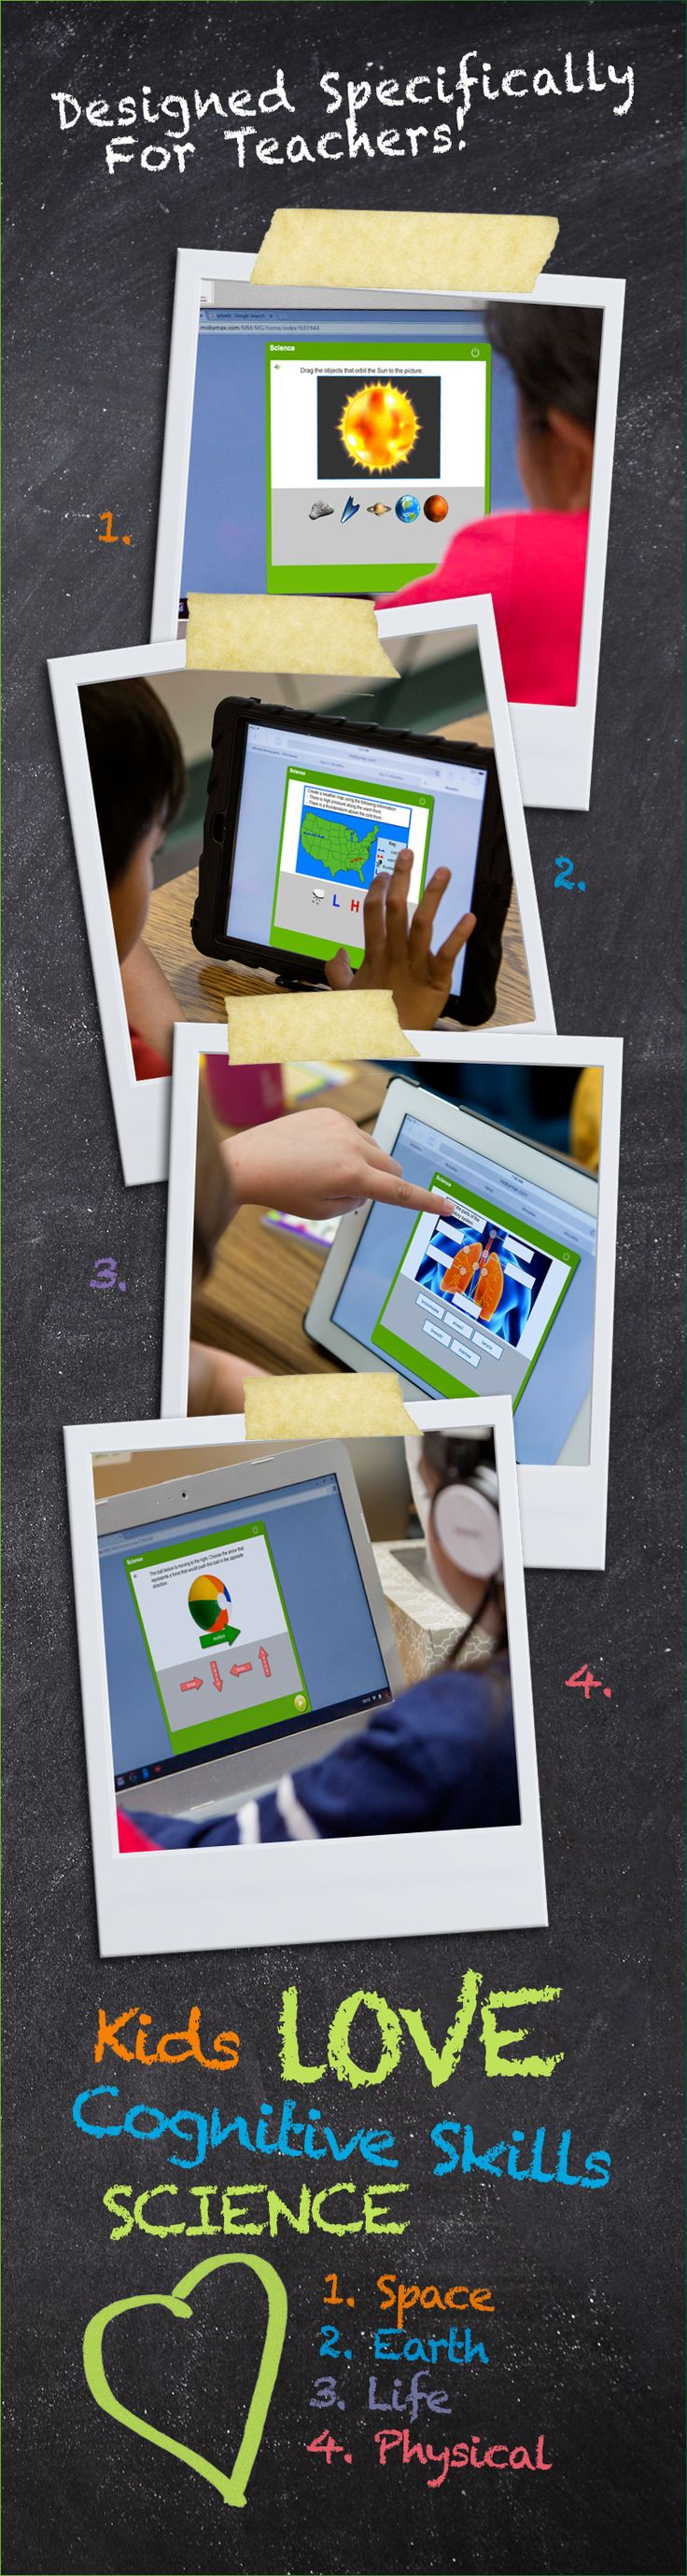 MobyMax Cognitive Skill Science for K-8 Schools - Free Touch Curriculum™ Deepens Learning Through Exploration, Reasoning and 20,000 Cognitive Skill Manipulatives. MobyMax is specifically designed for teachers.